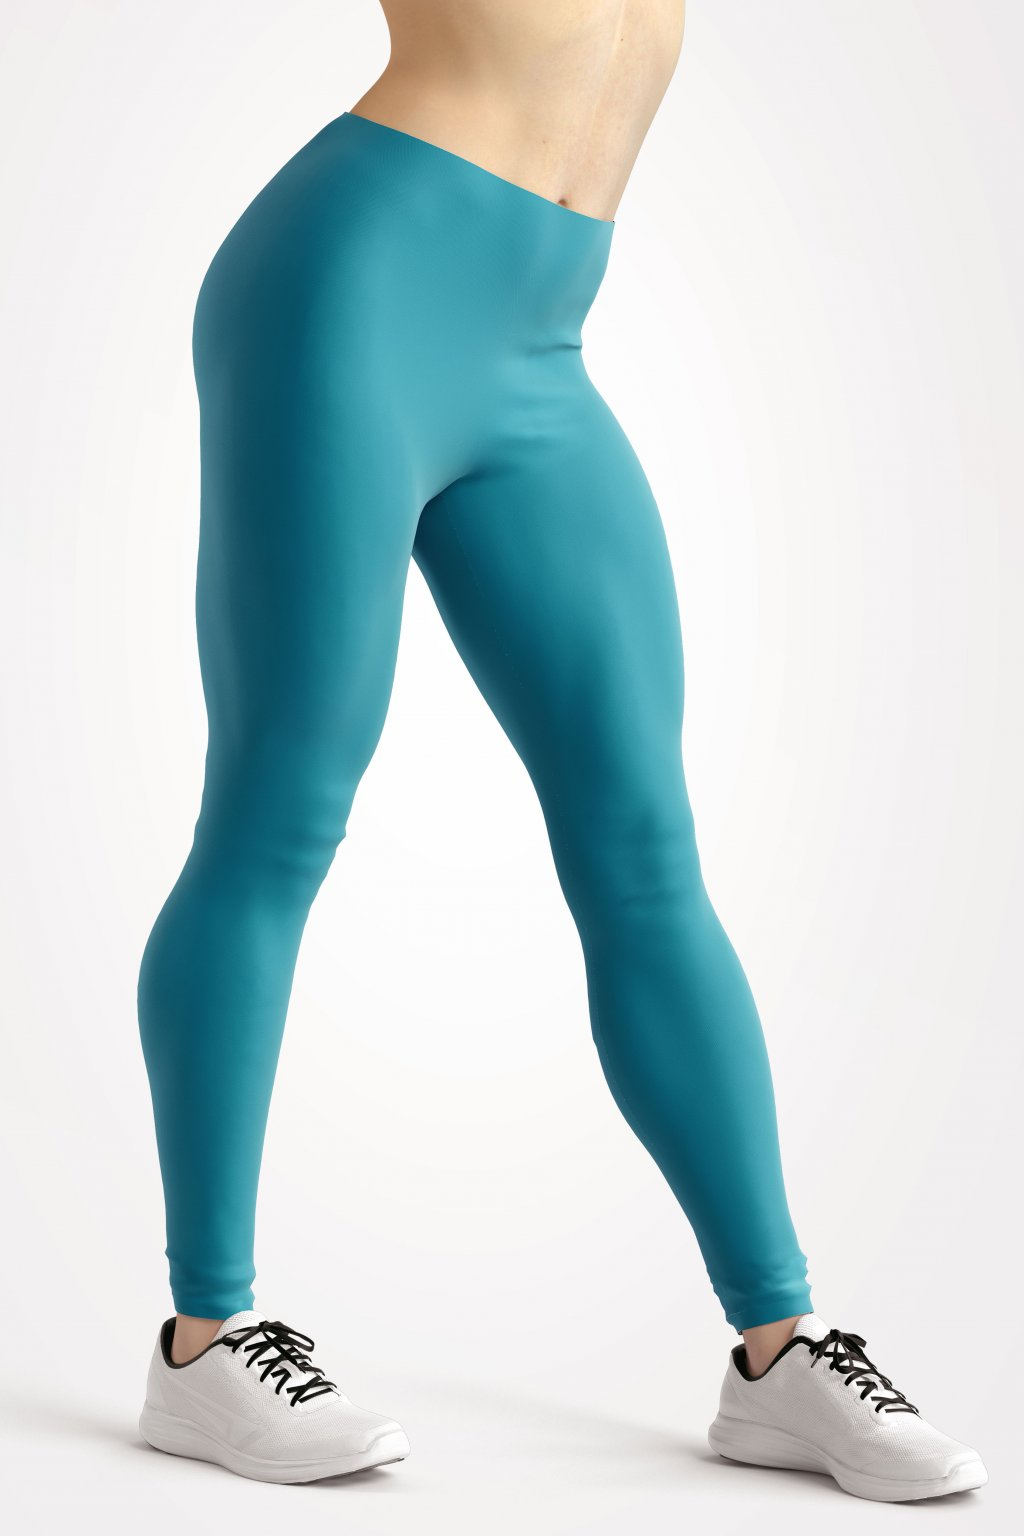 leggings azure blue essentials front side by utopy